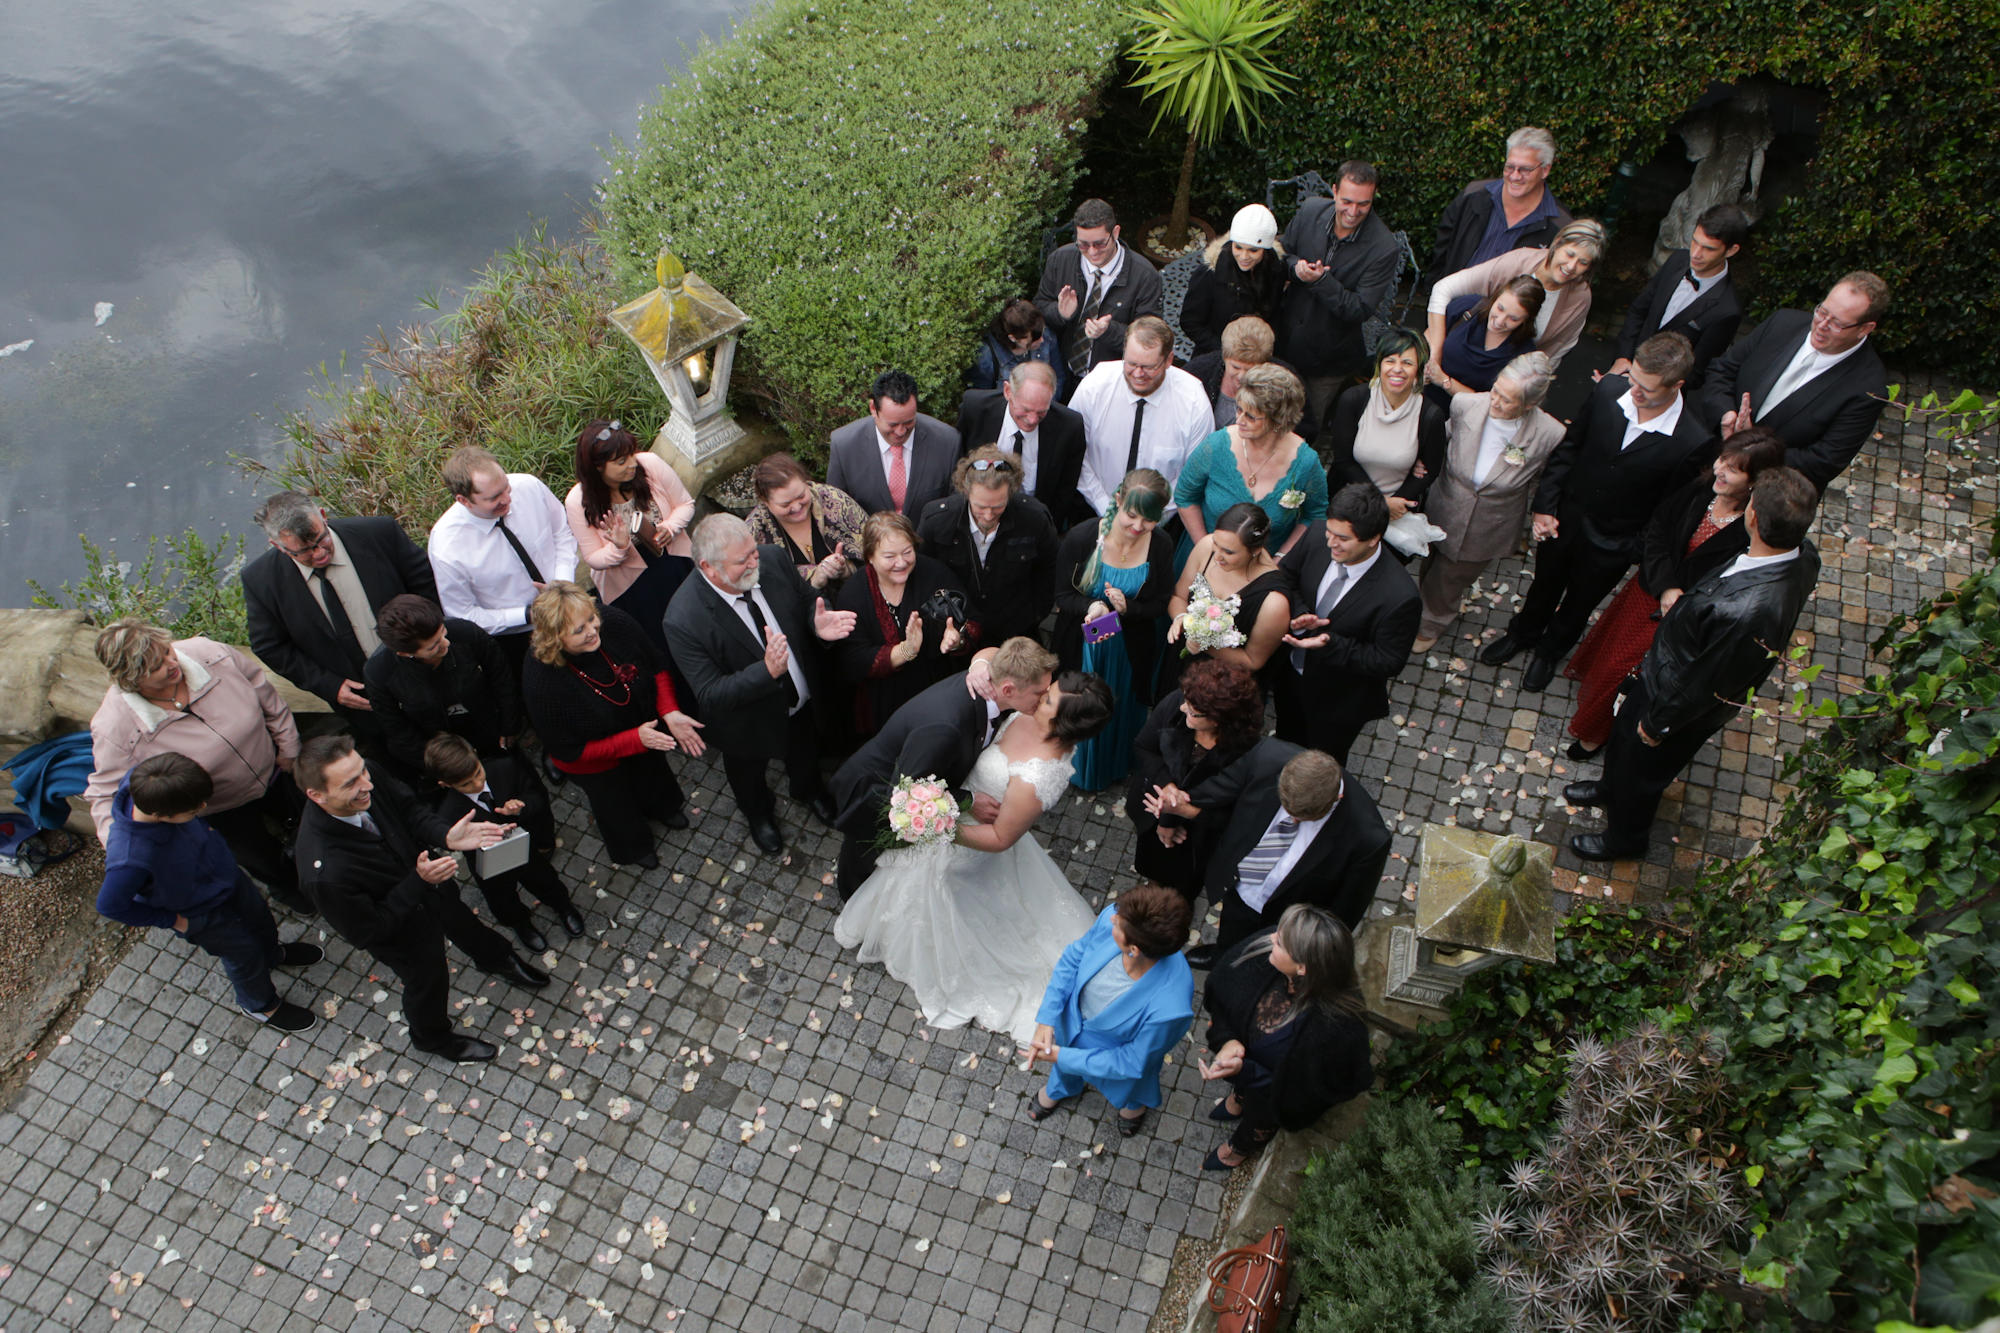 Wedding at Bygracealone - Wedding photographer George (56)